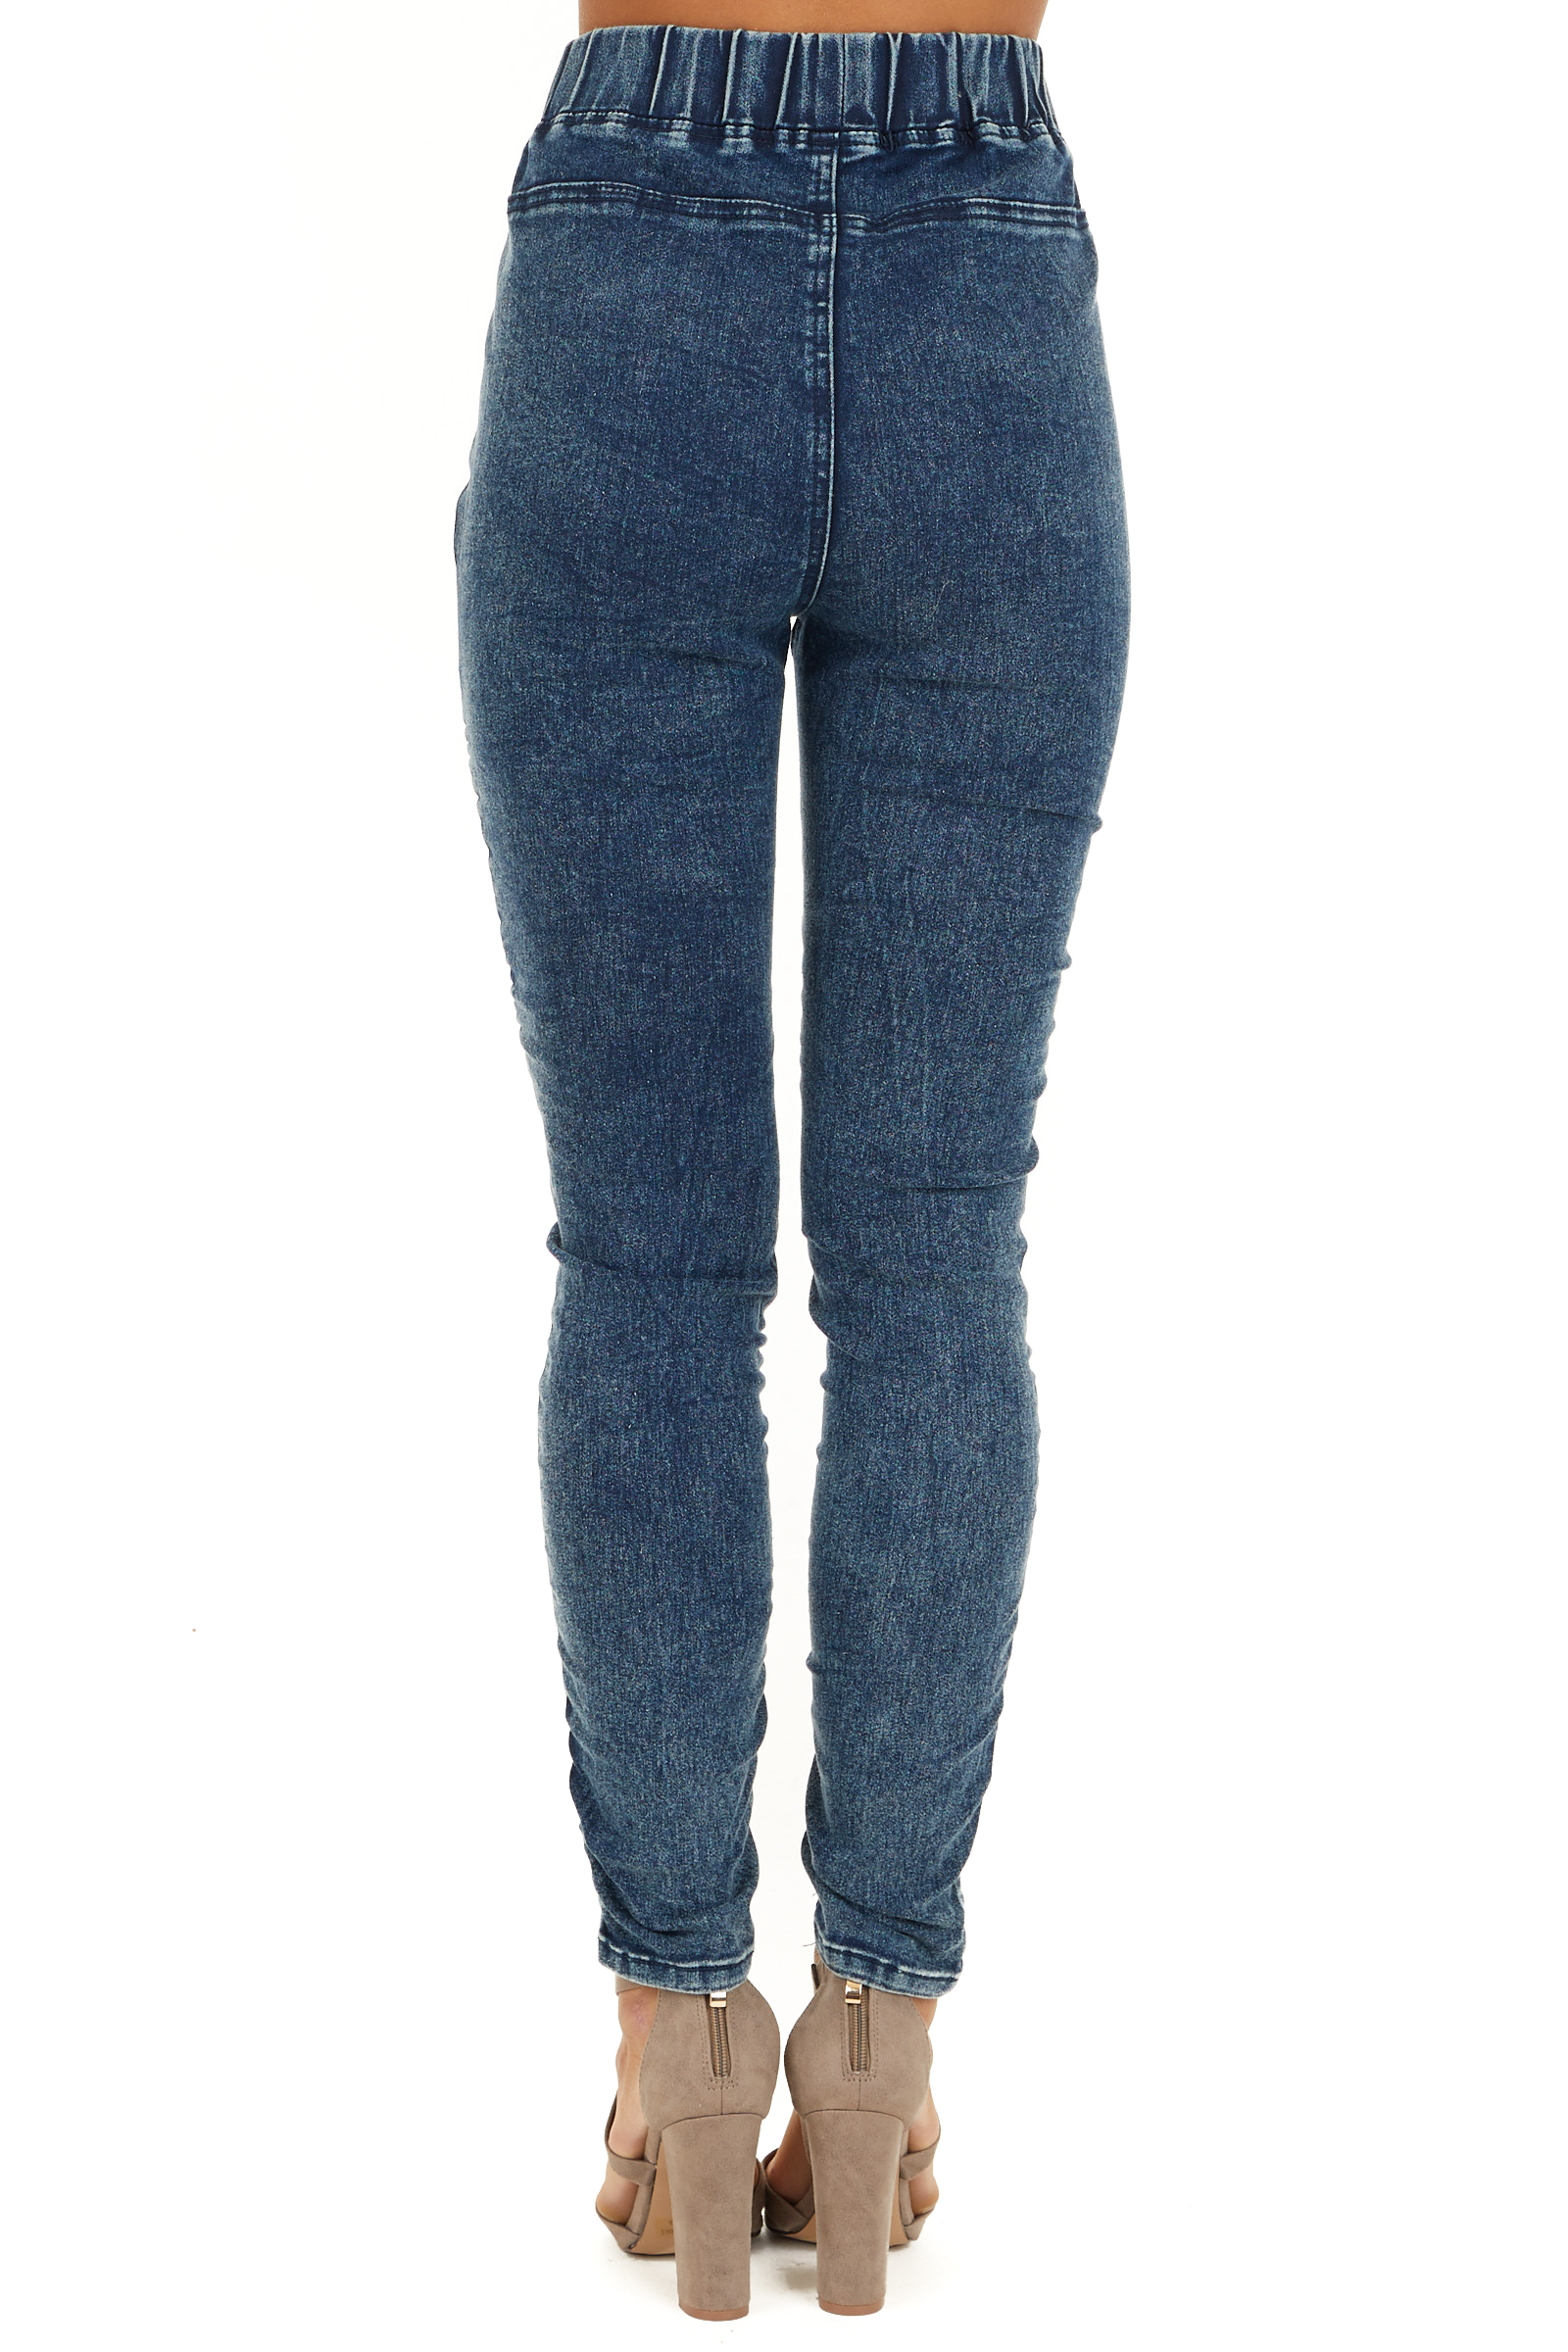 Washed Denim Blue Skinny Moto Leggings back